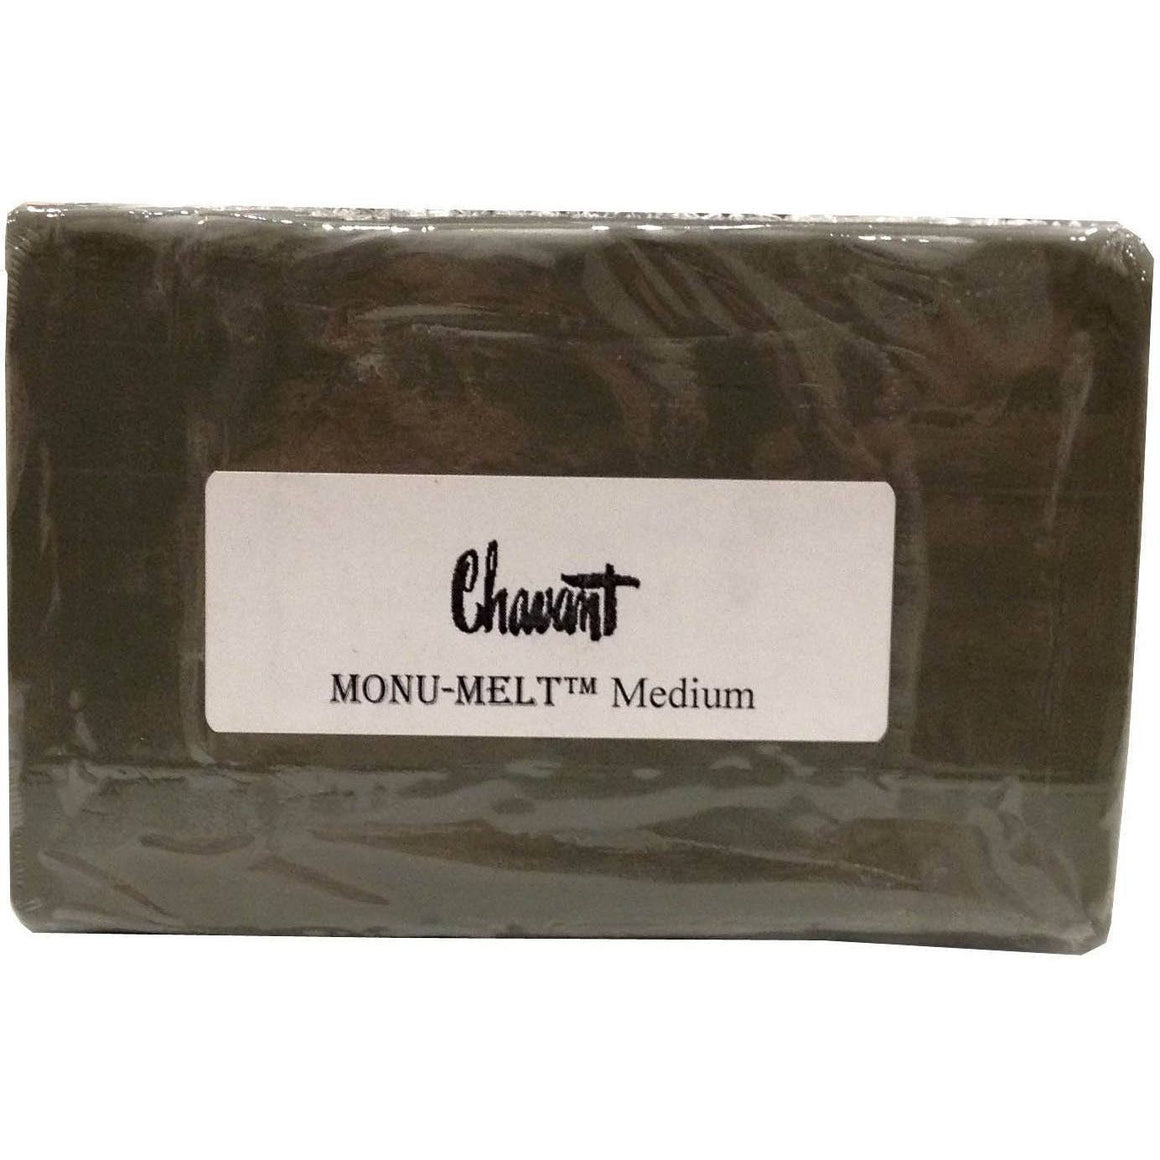 Clay - Chavant Monu-Melt  (Meltable Clayette)